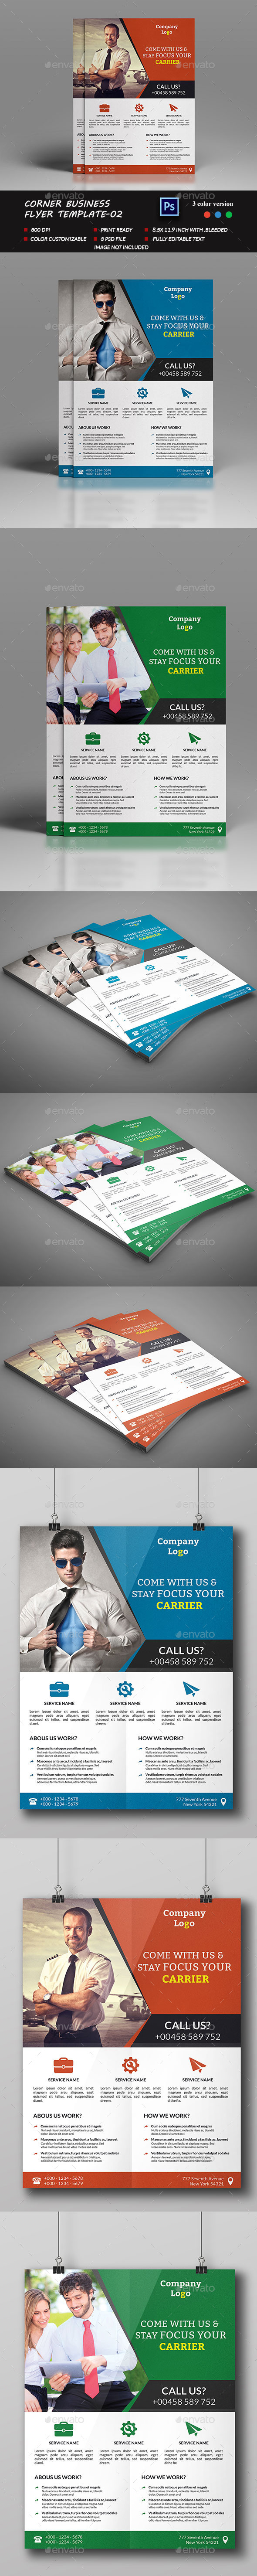 Corner Business Flyer Template-02 - Corporate Flyers